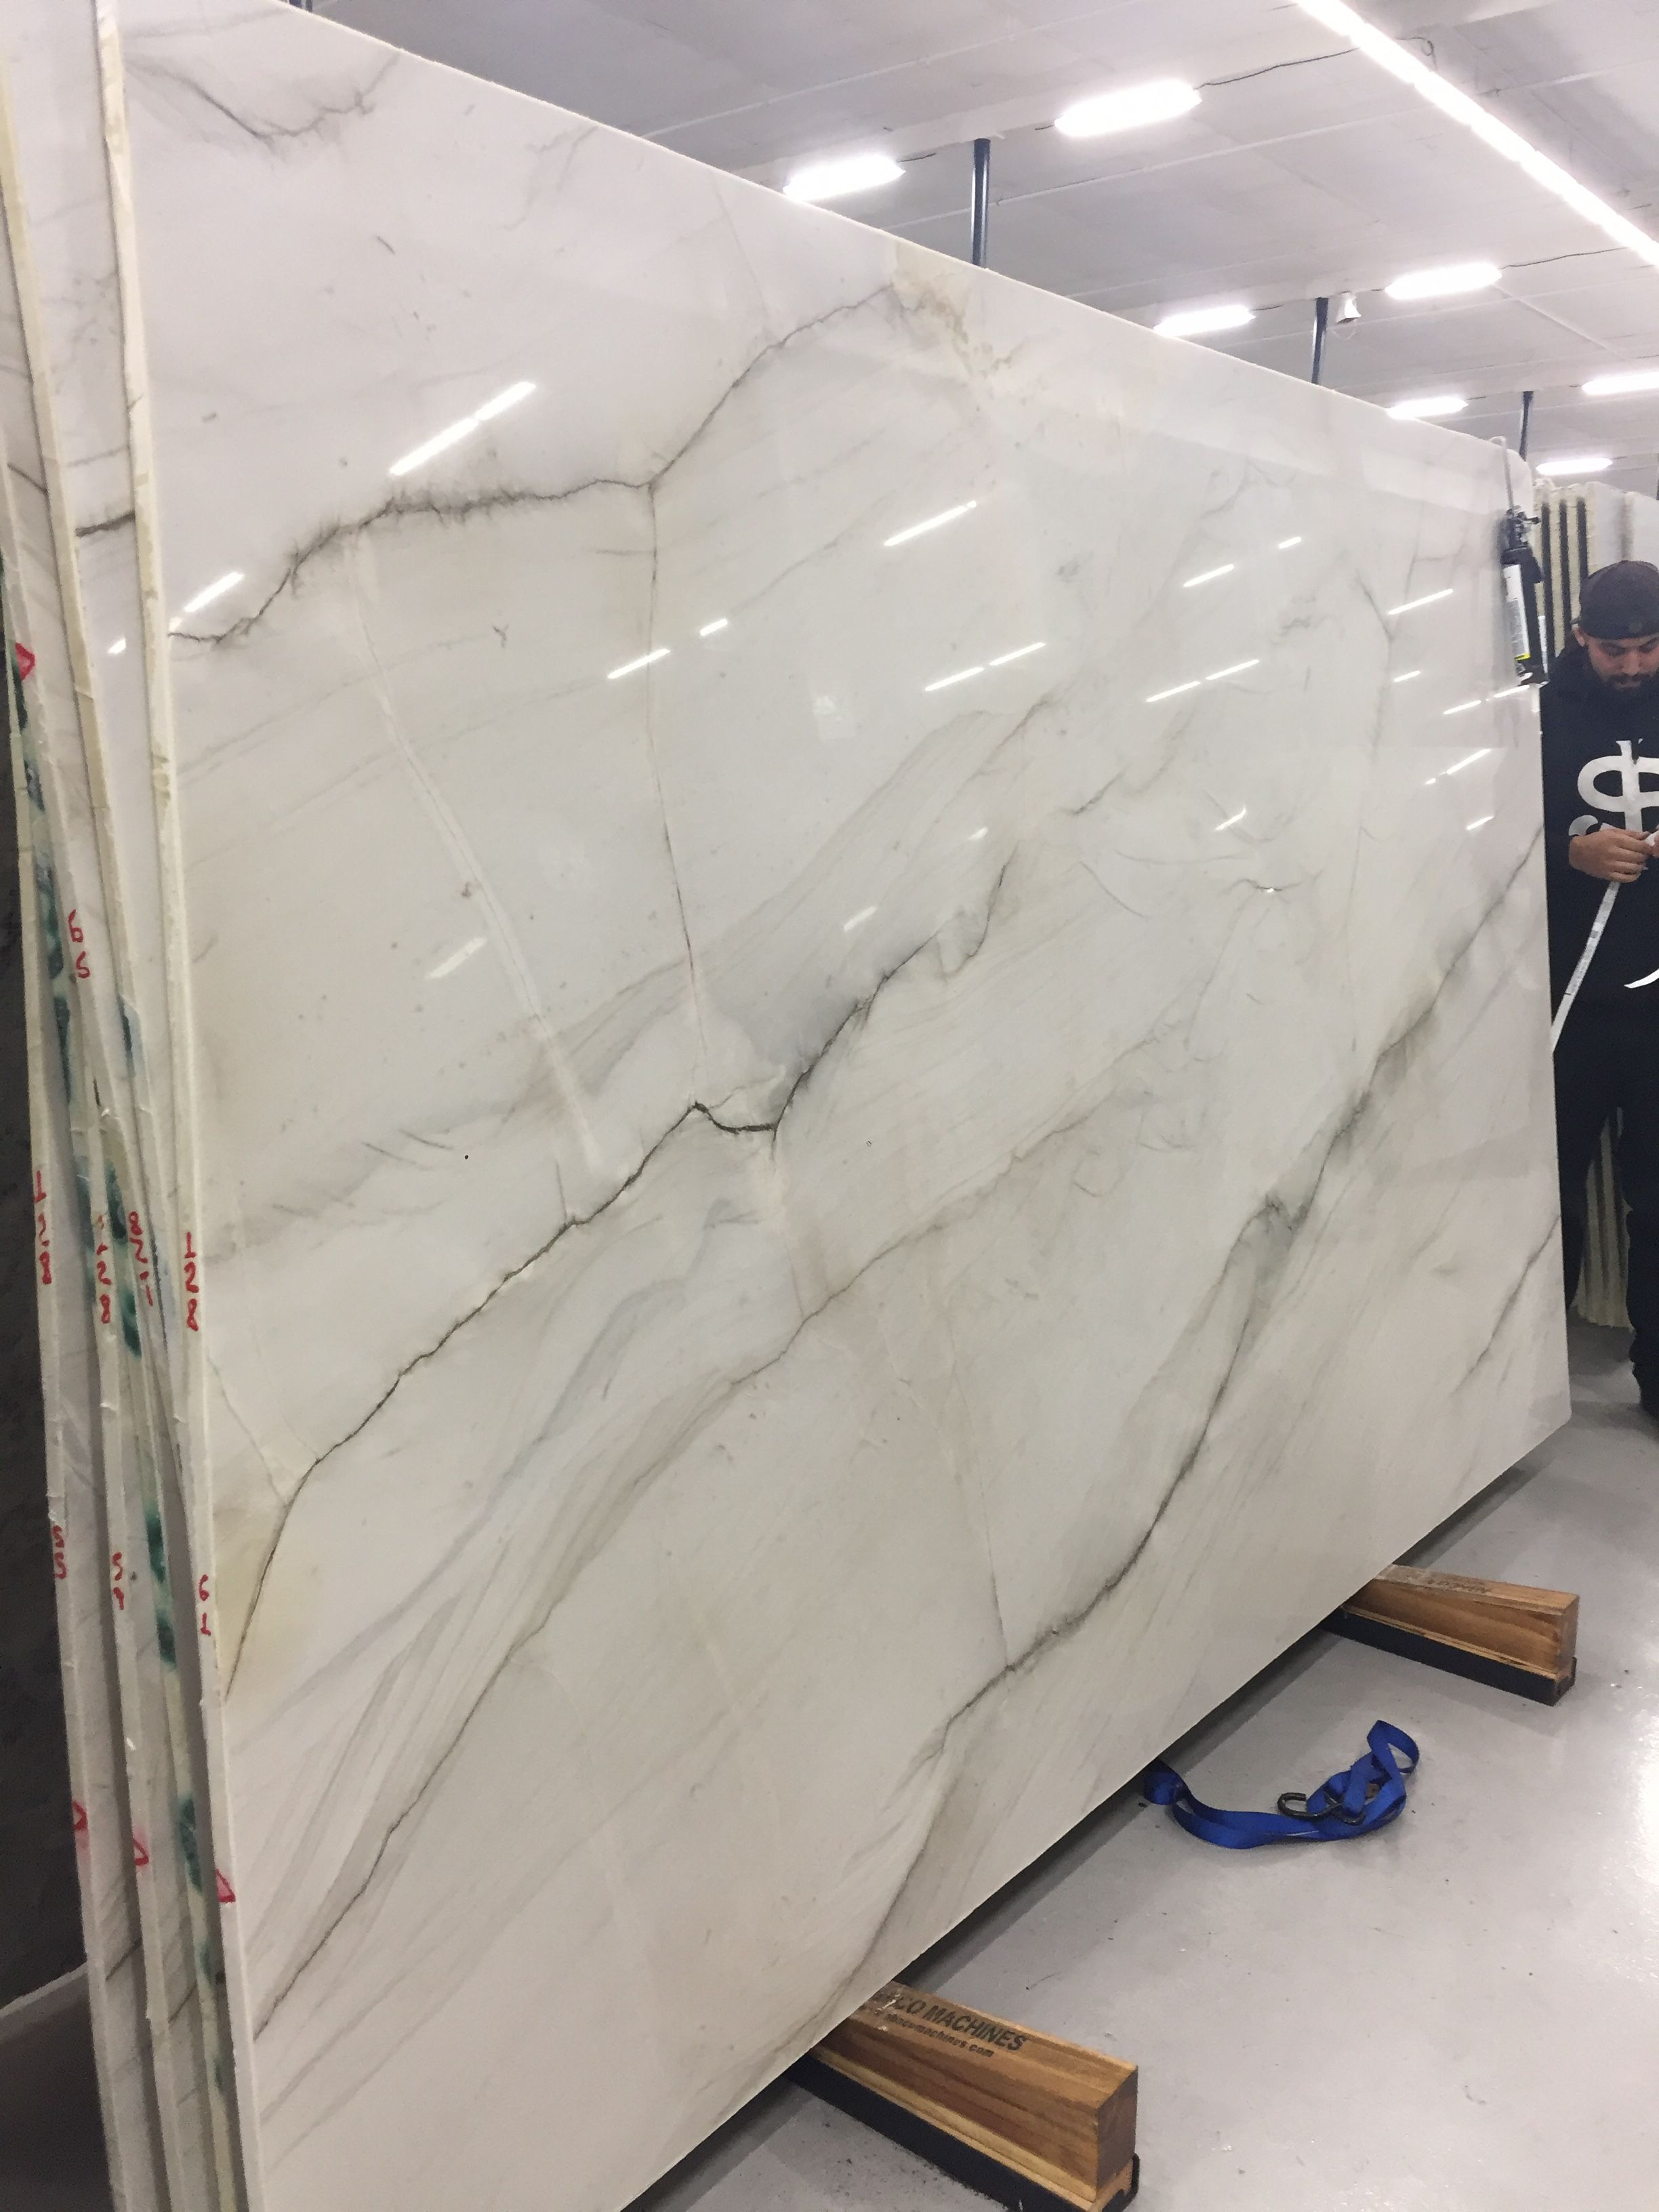 Mont blanc quartzite for kitchen counter tops project for Carrelage mont blanc sallanches